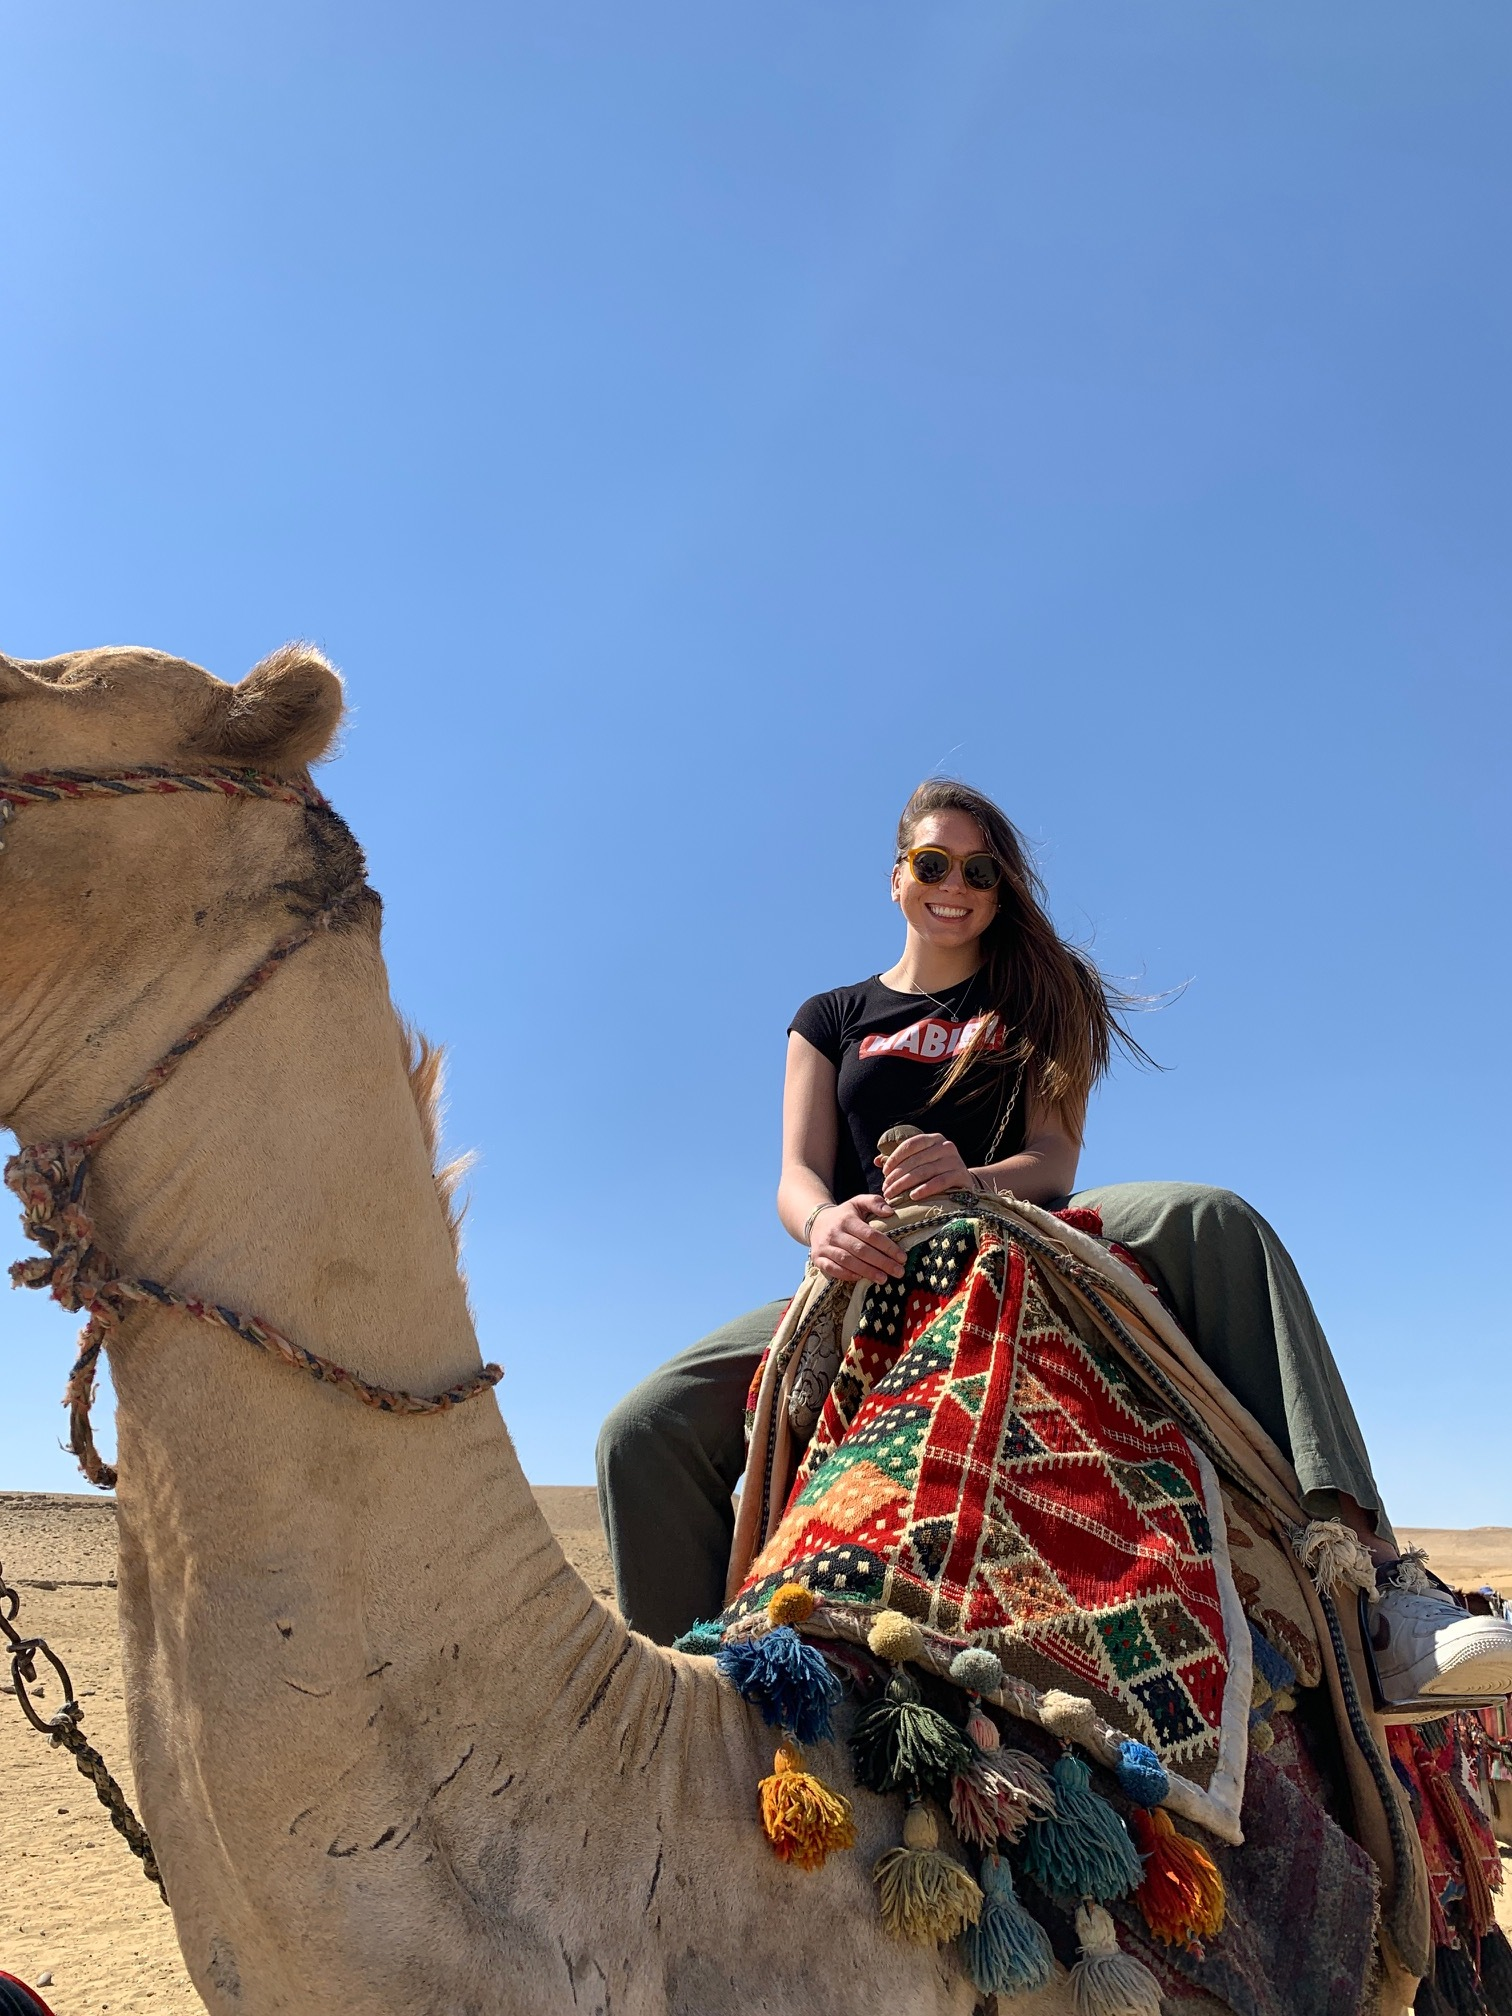 Of course we rode camels! Photo credit: Arguin, 2019